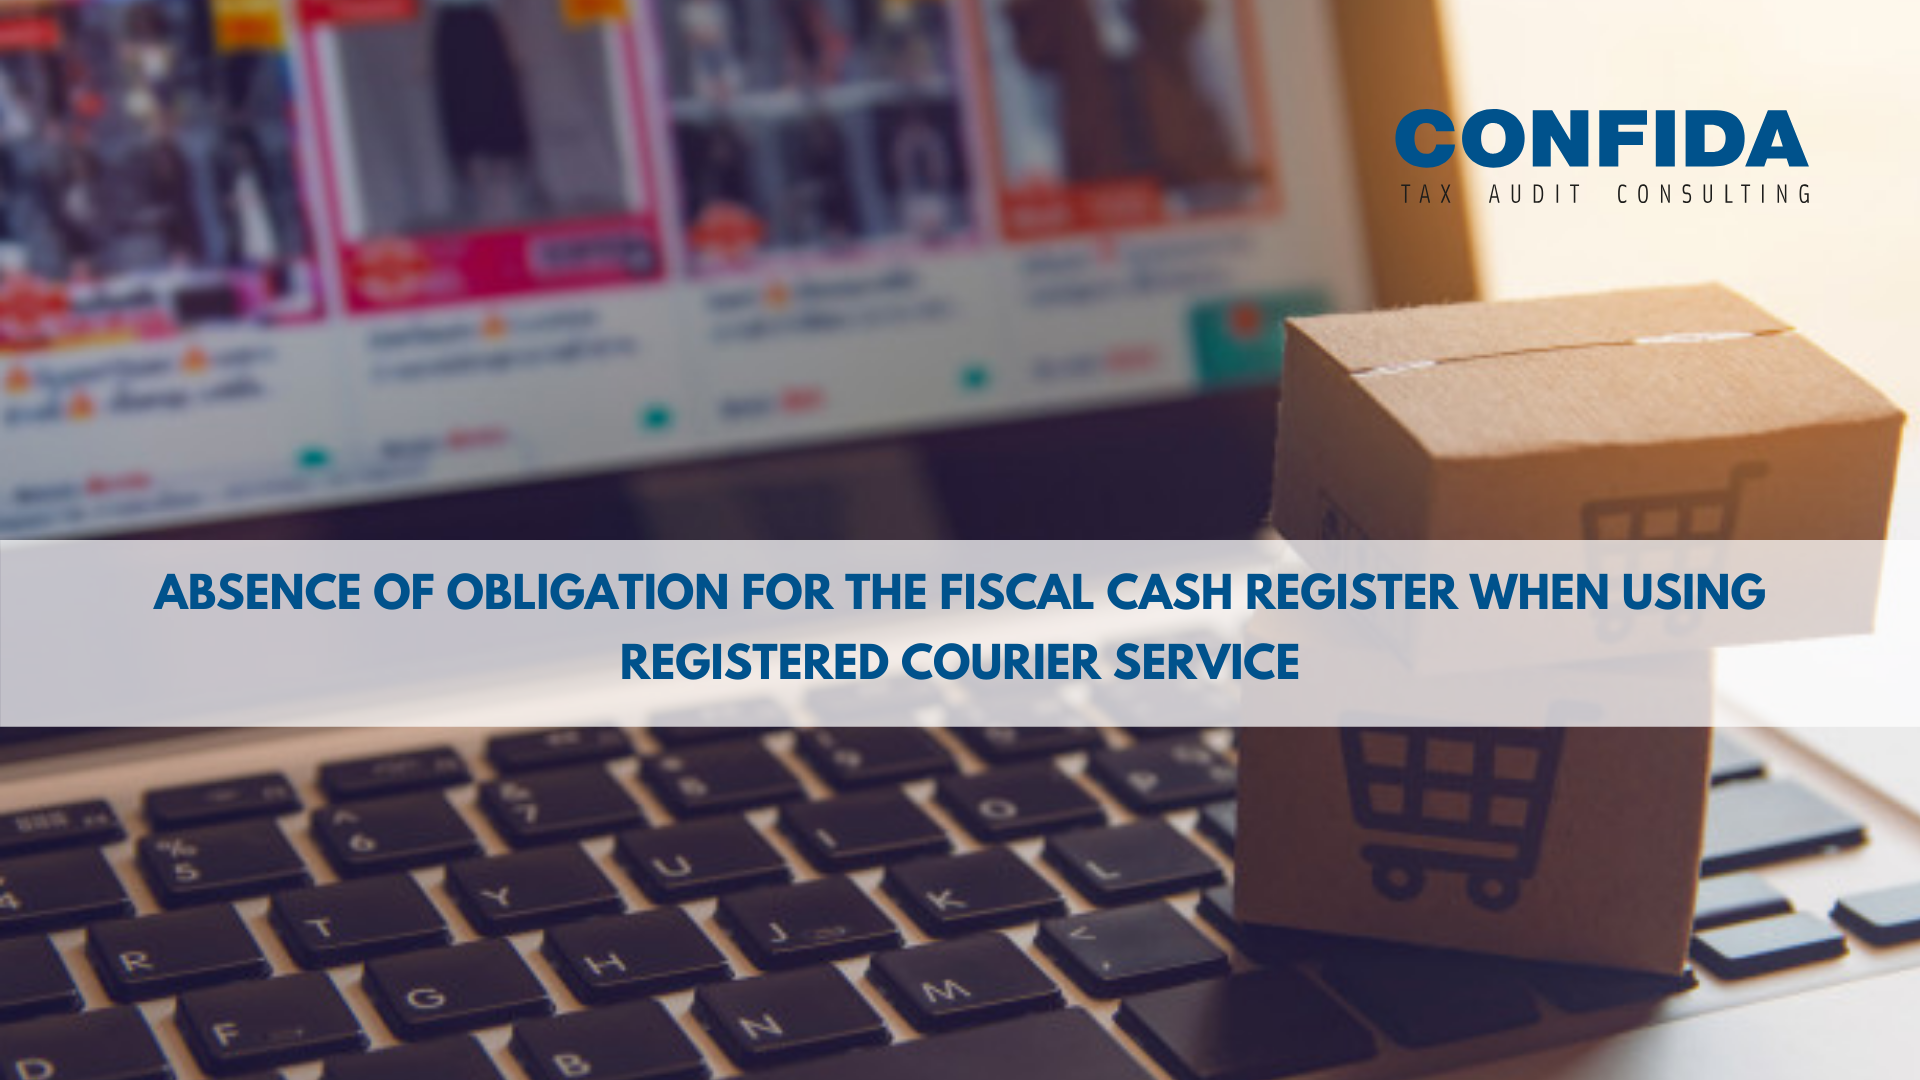 Absence of obligation for the fiscal cash register when using registered courier service